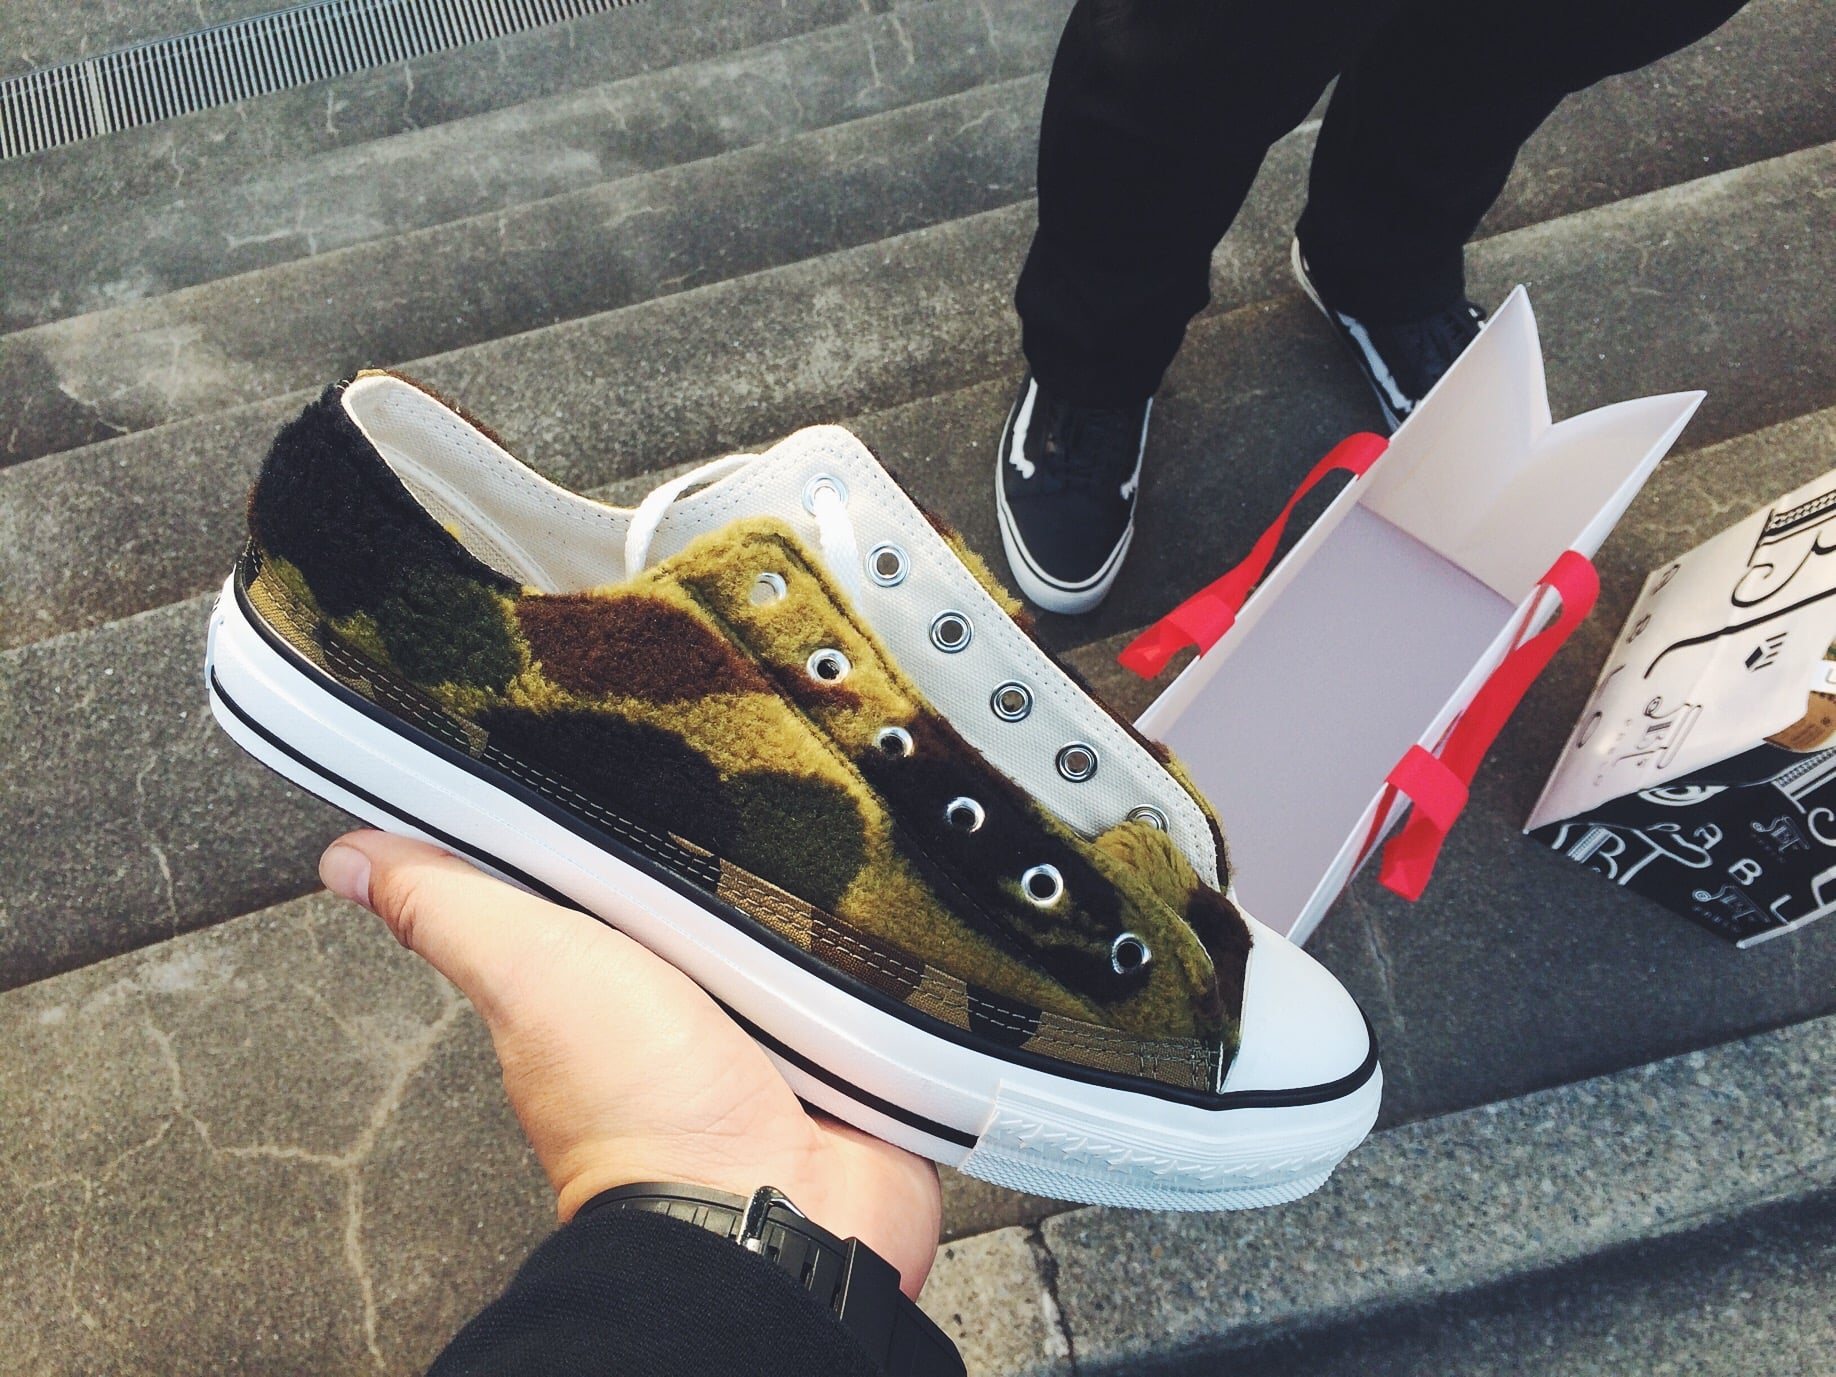 Since I didn't get anything for my brother for Christmas I bought him this Bape shoes. Bape's employees walked us out, handed him the bag and bowed. Tradition out here is dope.